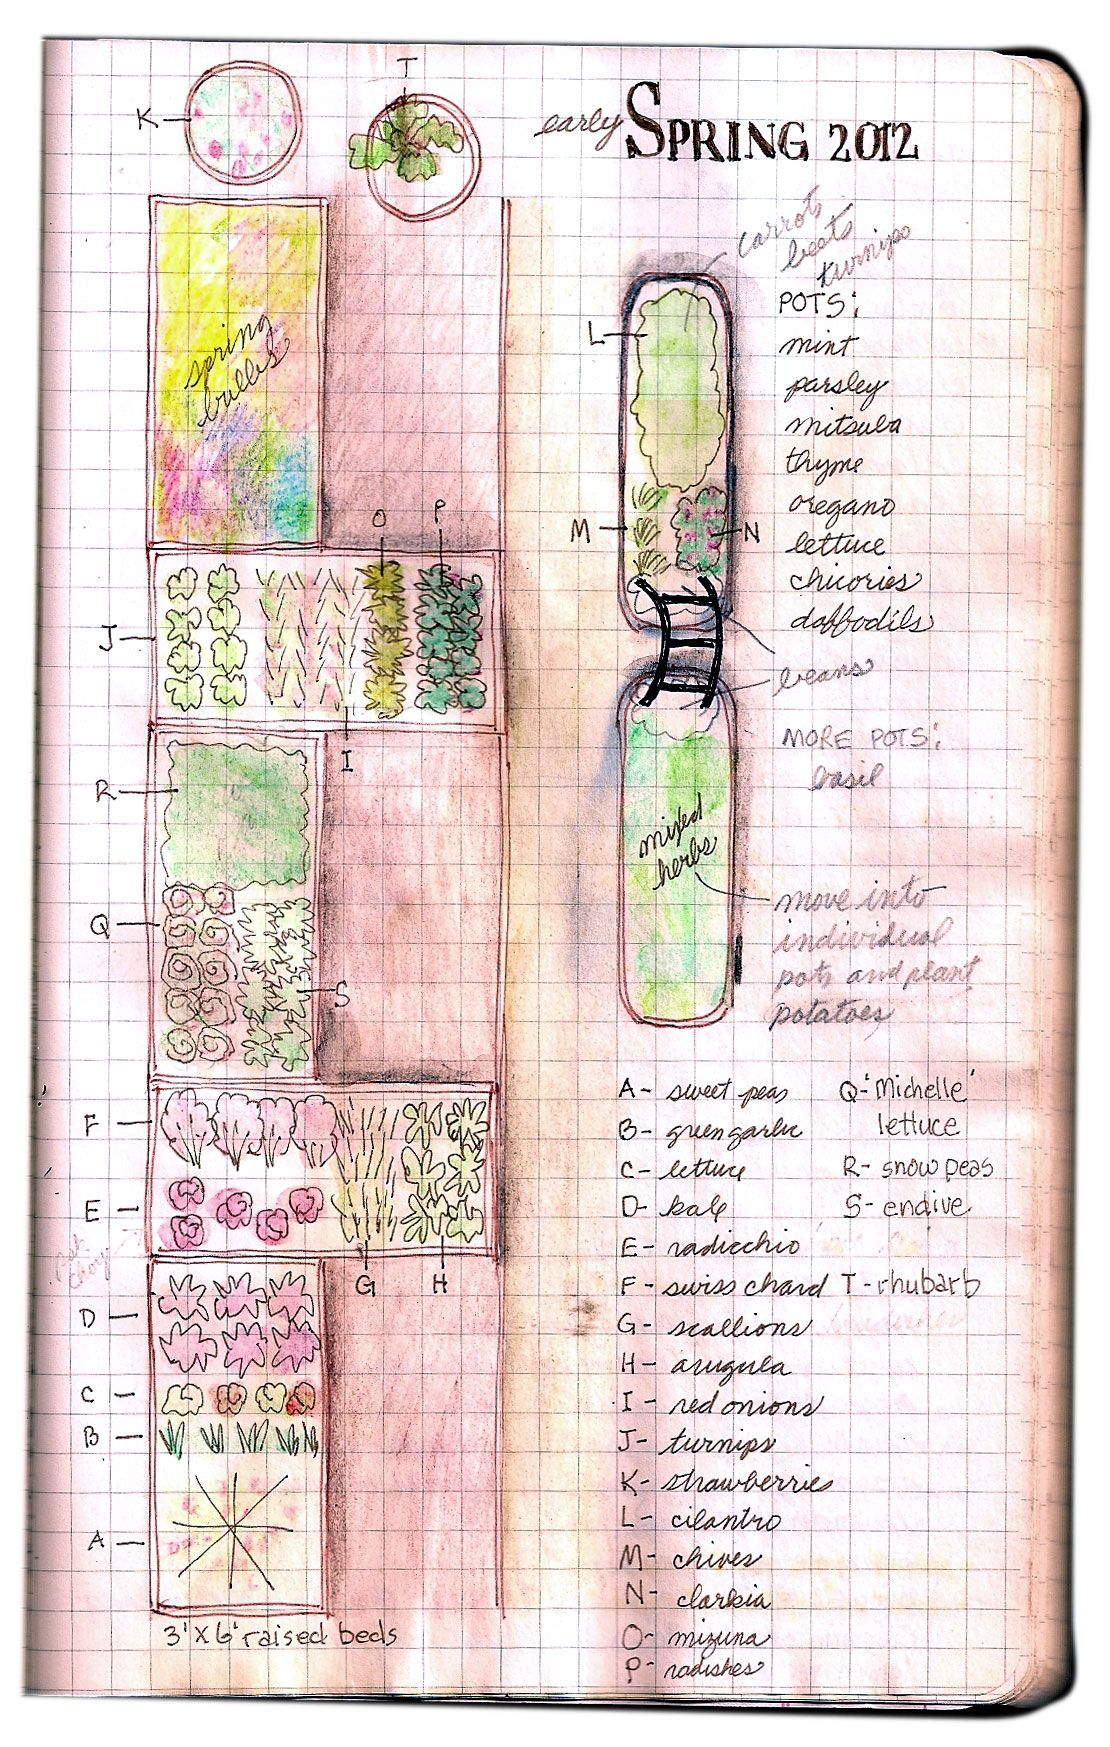 Healthy Growing Tips Tricks And Techniques For Organic Gardening Useful Garden Ideas And Tips Garden Journal Free Garden Planner Garden Planner